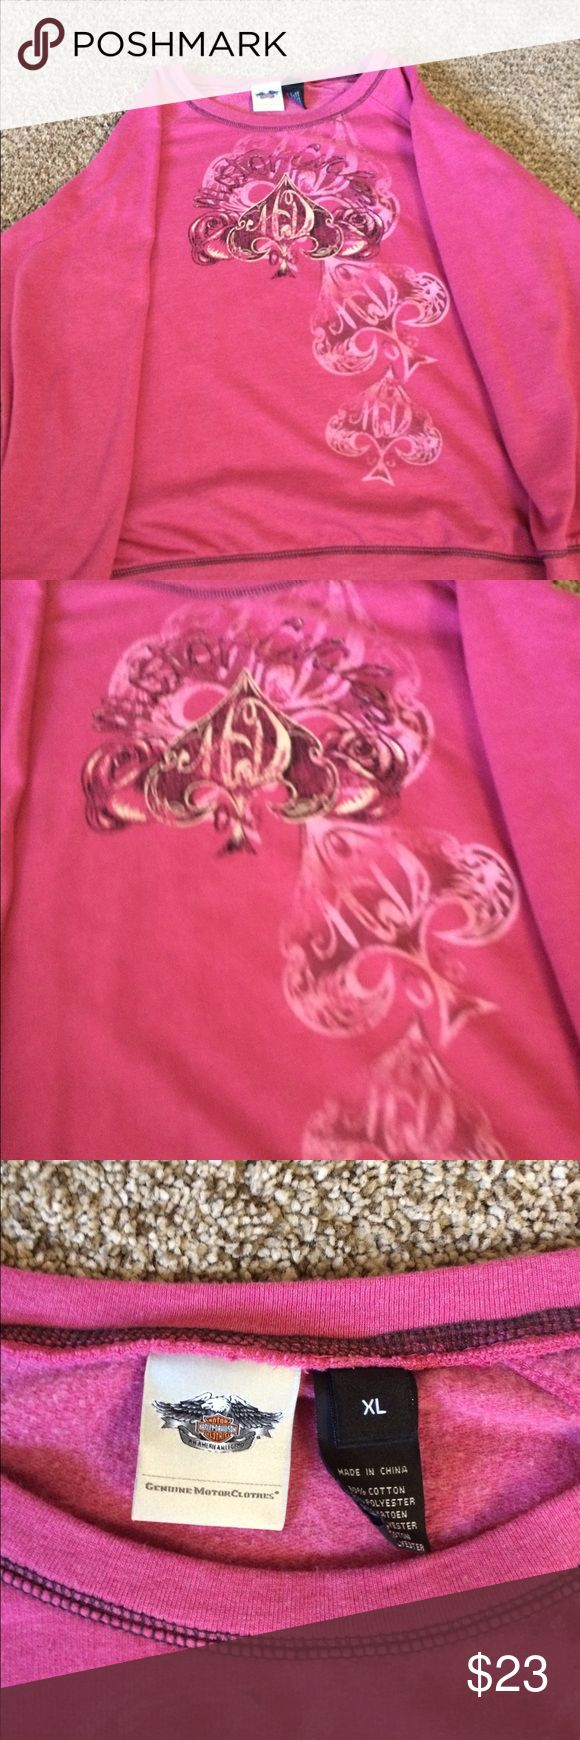 """💕💕Authentic Harley Davidson Sweatshirt💕💕 💕💕💕Authentic Harley Davidson Sweatshirt Size """"XL"""" More Like a """"L"""" In Excellent Condition Pretty Pink Color With Harley Design on Front Nothing on Back💕💕💕 Harley-Davidson Tops Sweatshirts & Hoodies"""